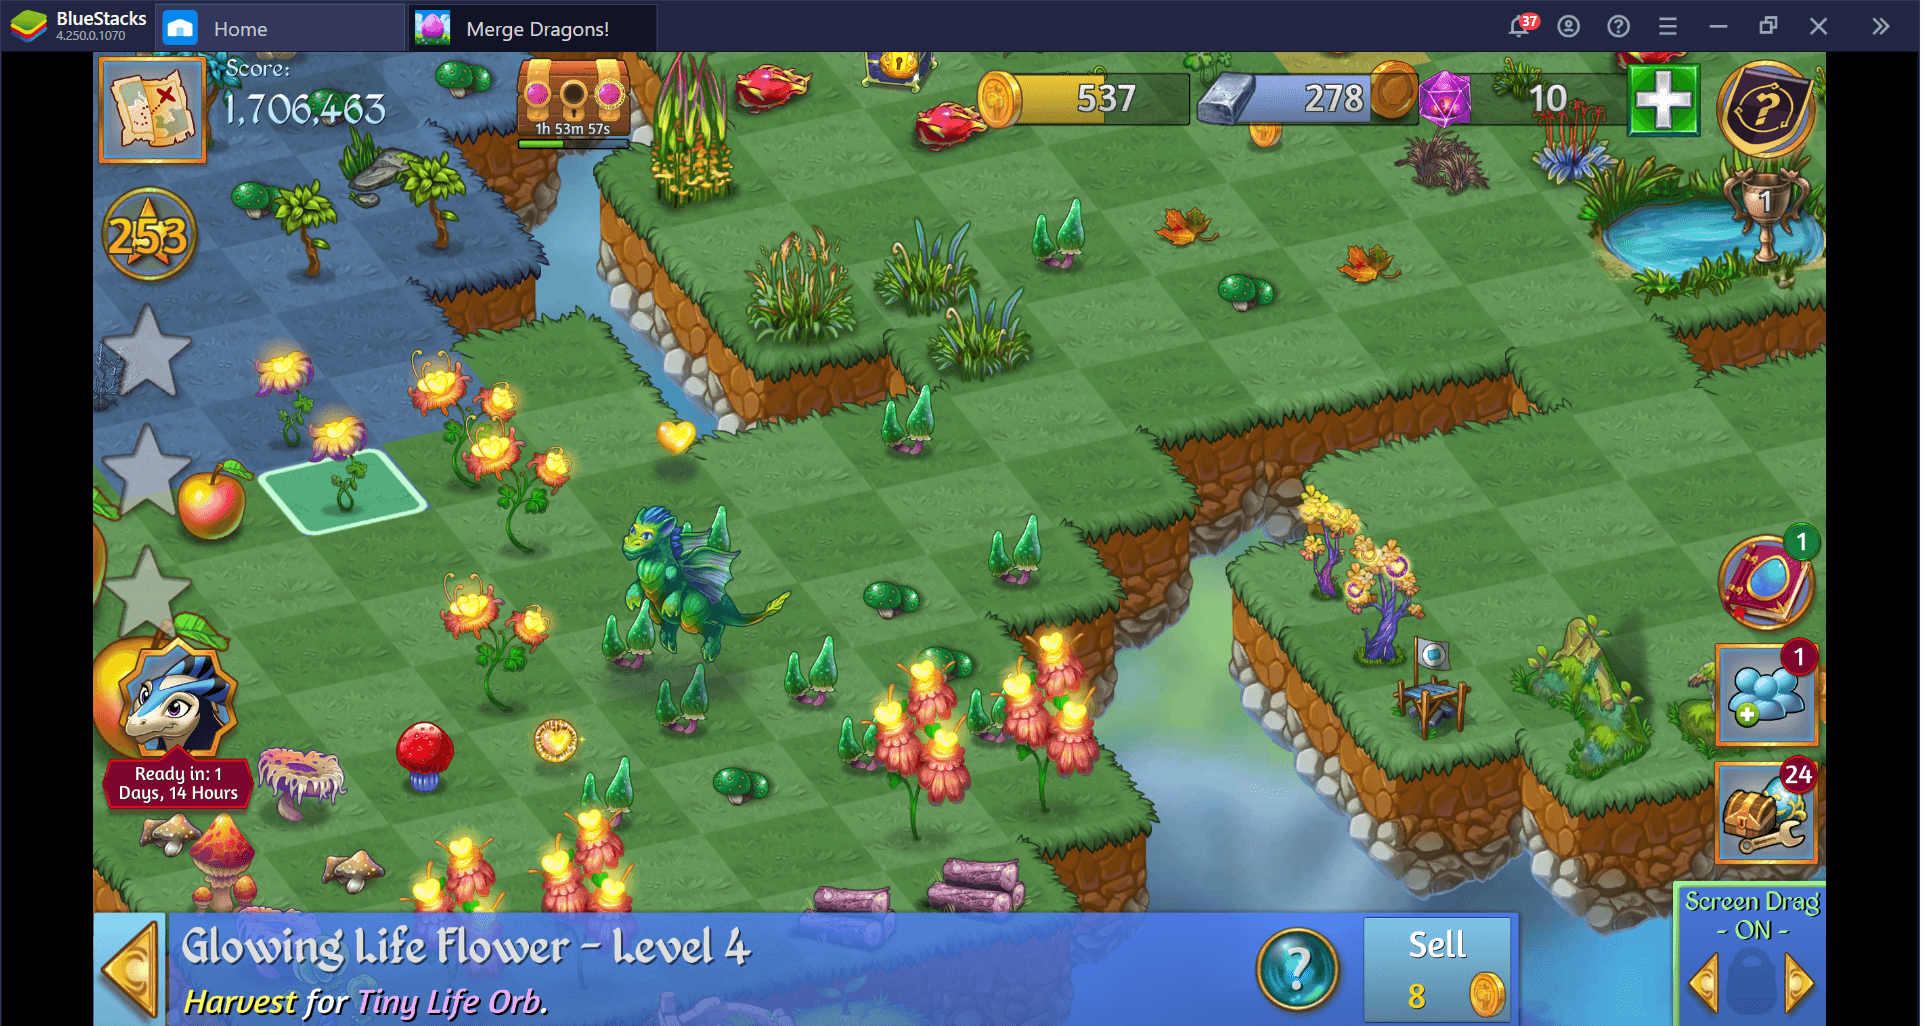 Everything You Should Know About Life Flowers in Merge Dragons